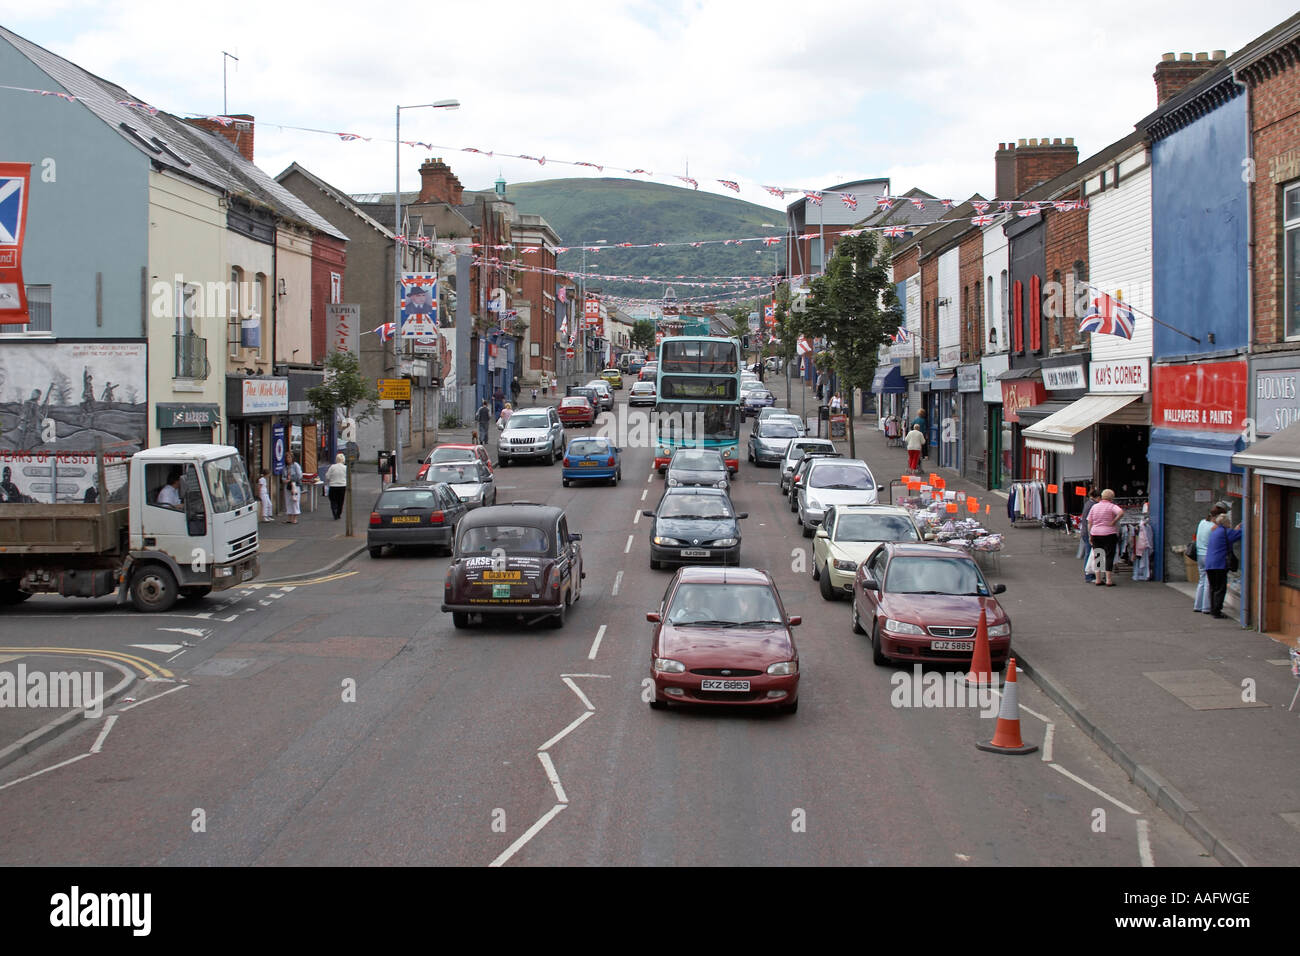 Loyalist Union Jack flags logos murals signs and graffiti with traffic on Shankill Road - Stock Image